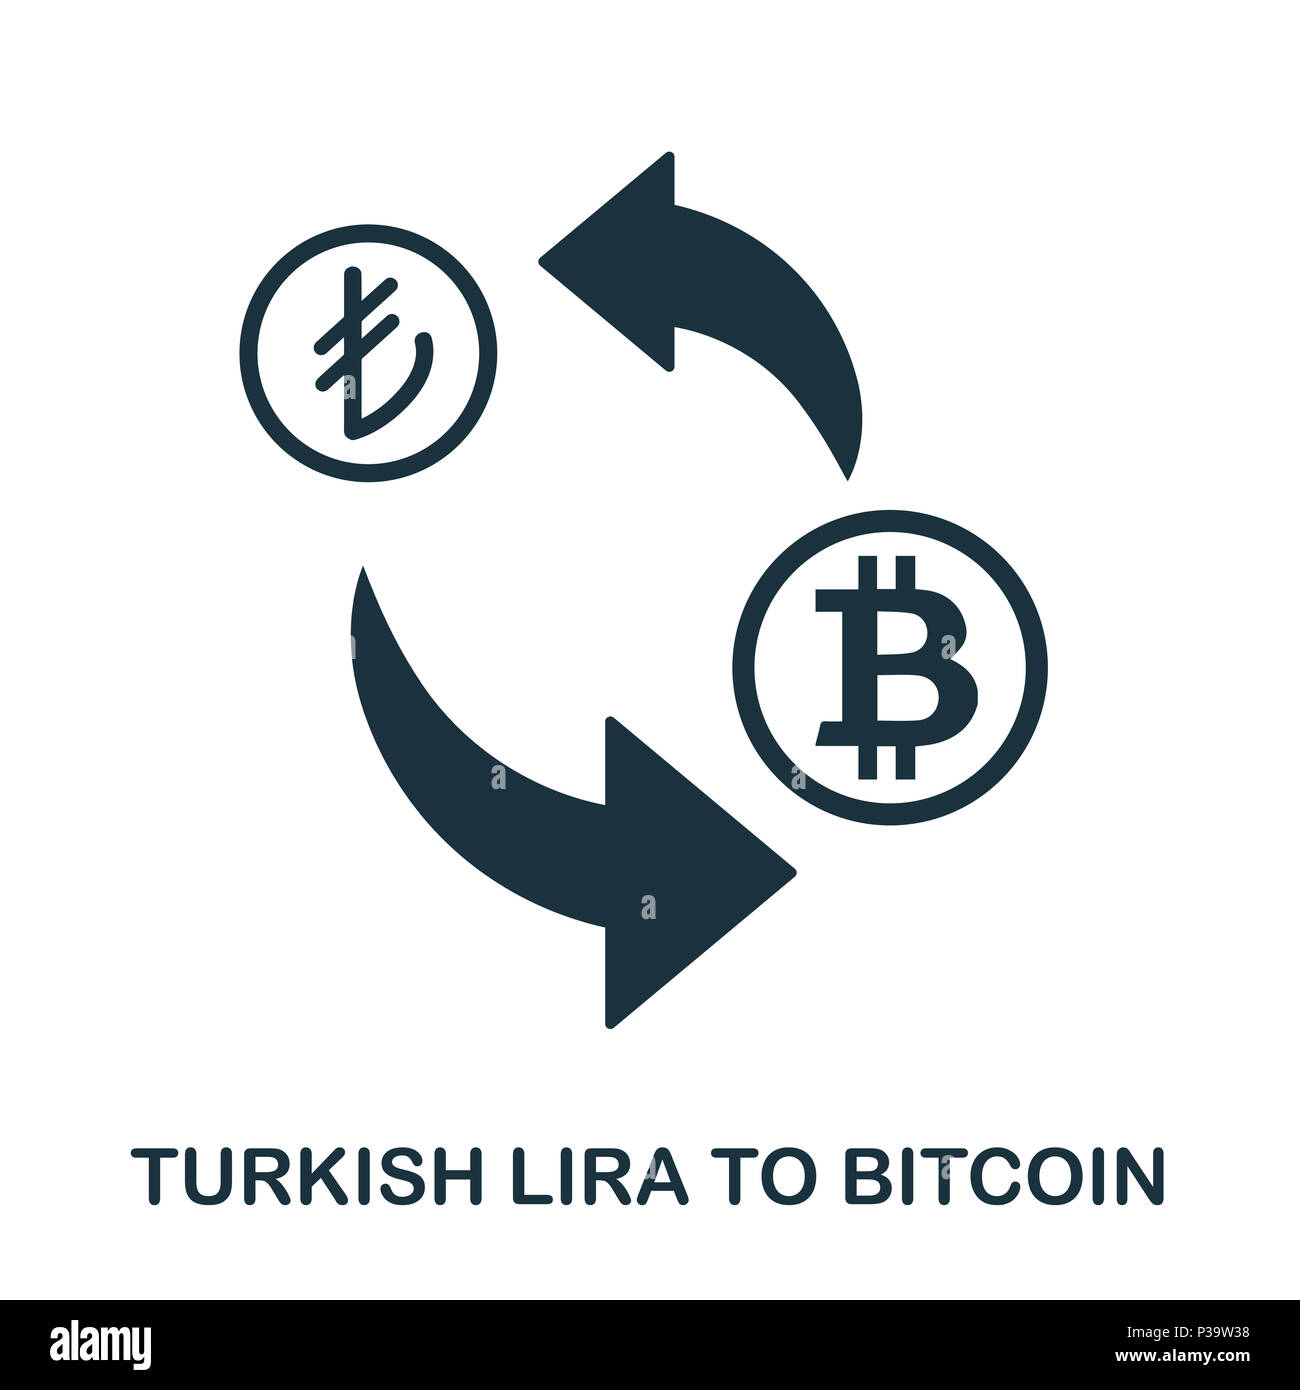 Turkish Lira To Bitcoin icon. Mobile app, printing, web site icon. Simple element sing. Monochrome Turkish Lira To Bitcoin icon illustration. Stock Photo